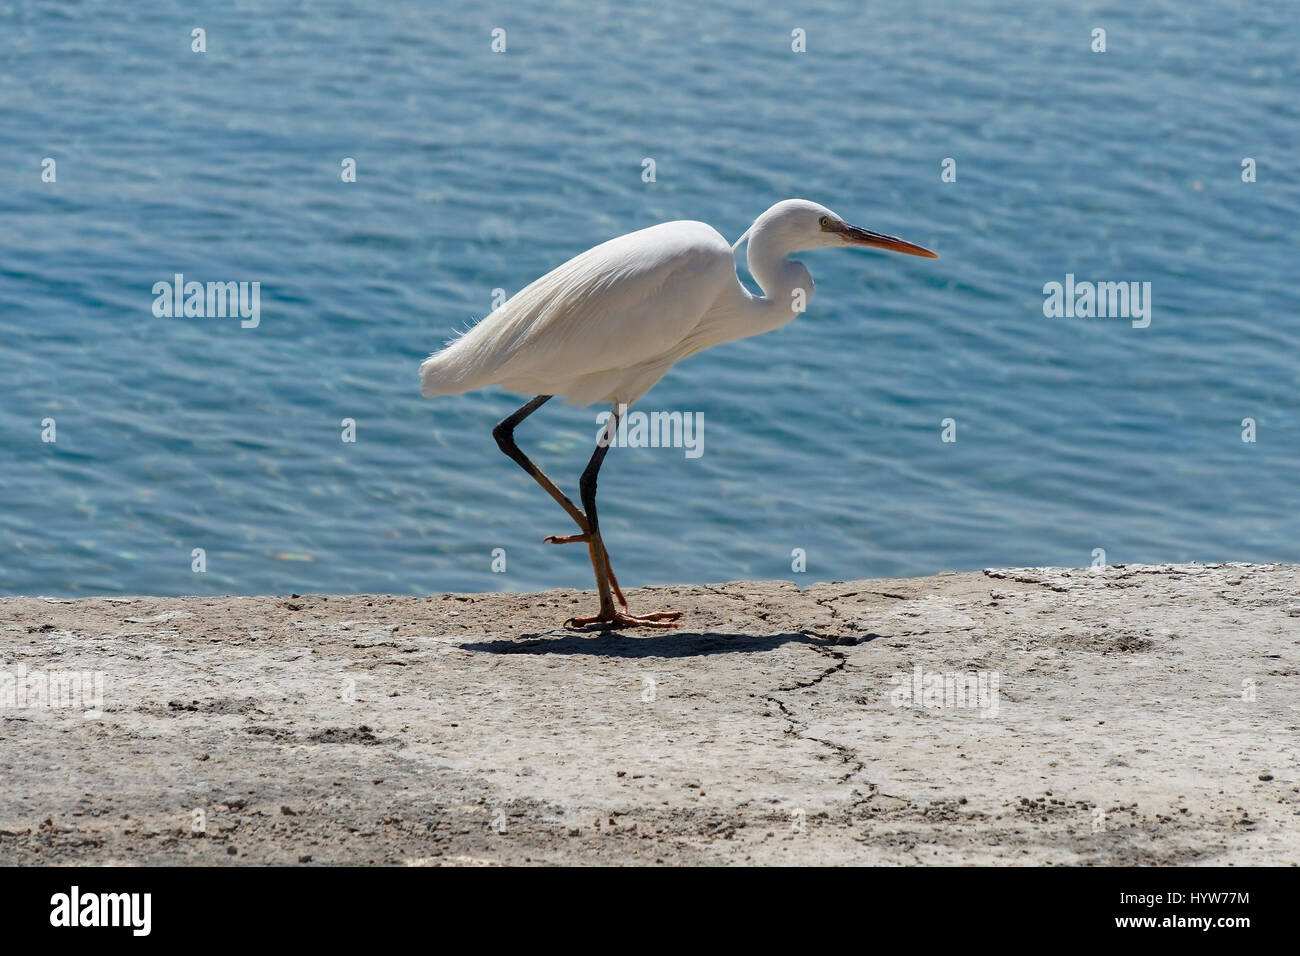 Egyptian Egret stands motionless on a concrete path at the side of the sea - Stock Image